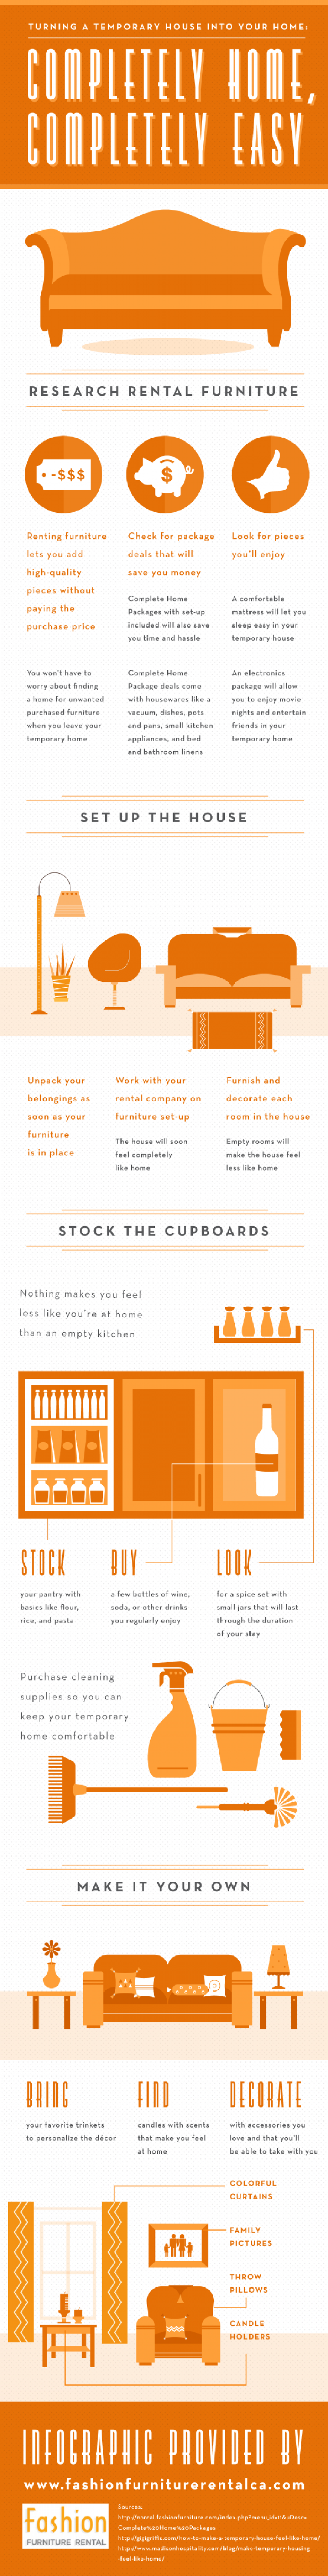 Turning a Temporary House into Your Home: Completely Home, Completely Easy Infographic